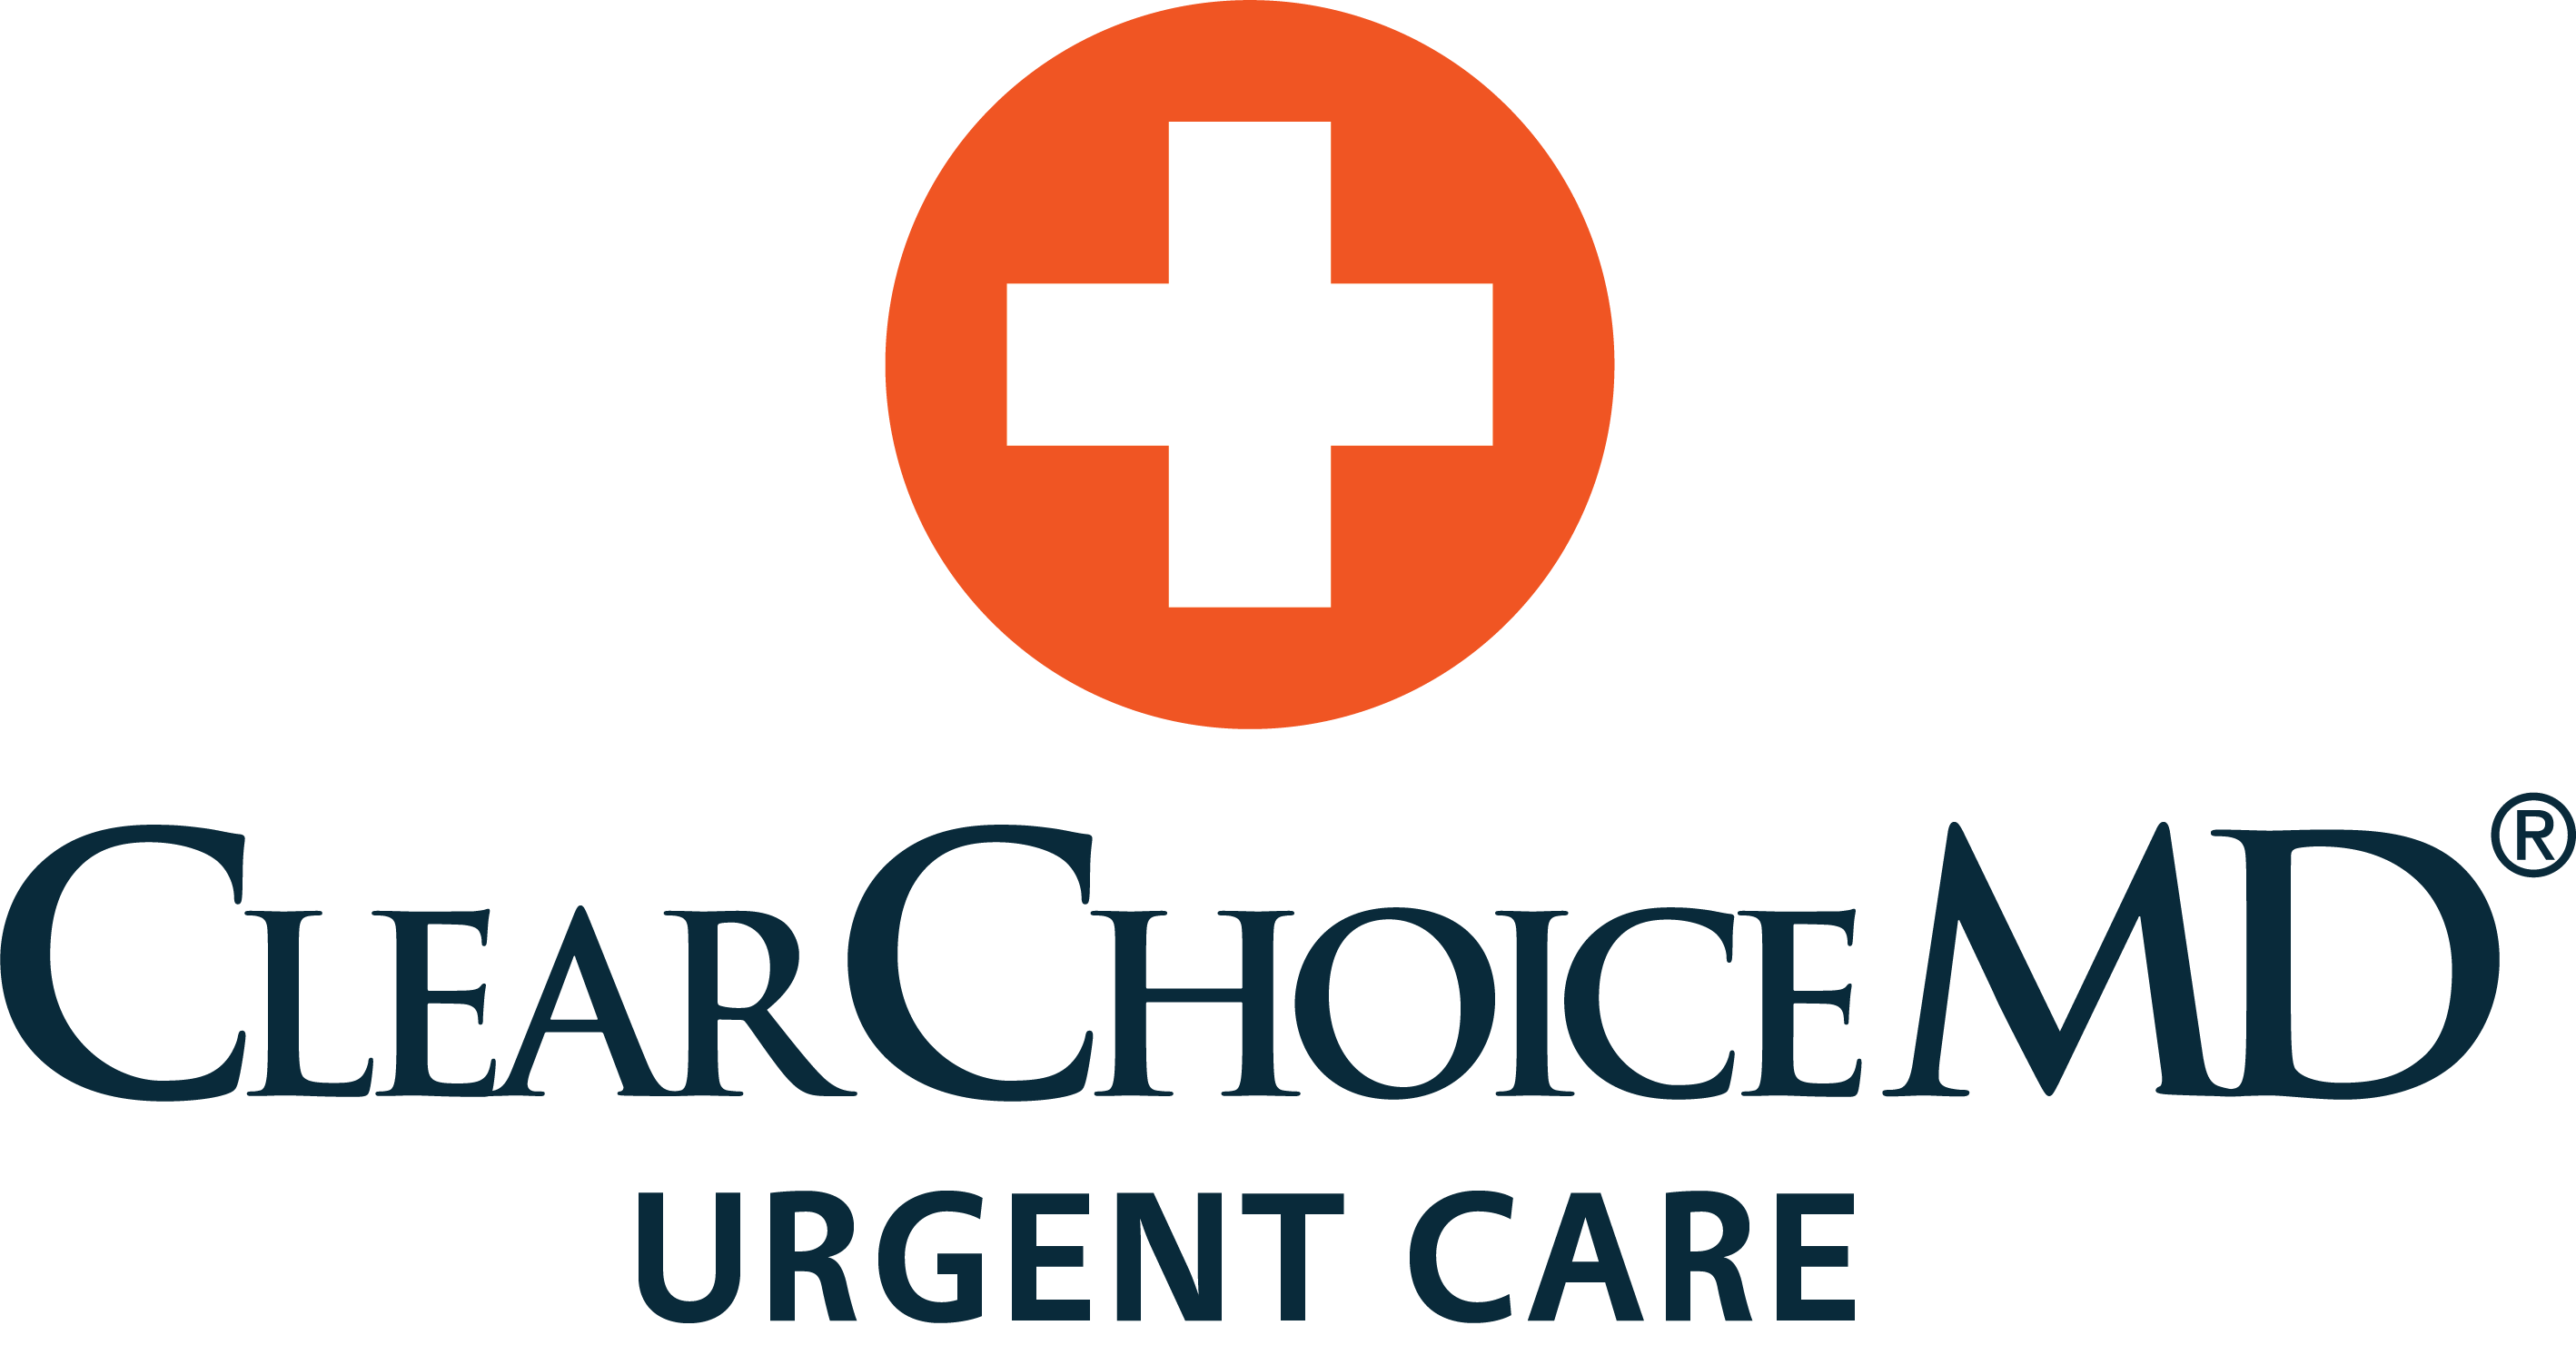 ClearChoiceMD Urgent Care - Belmont, NH Logo